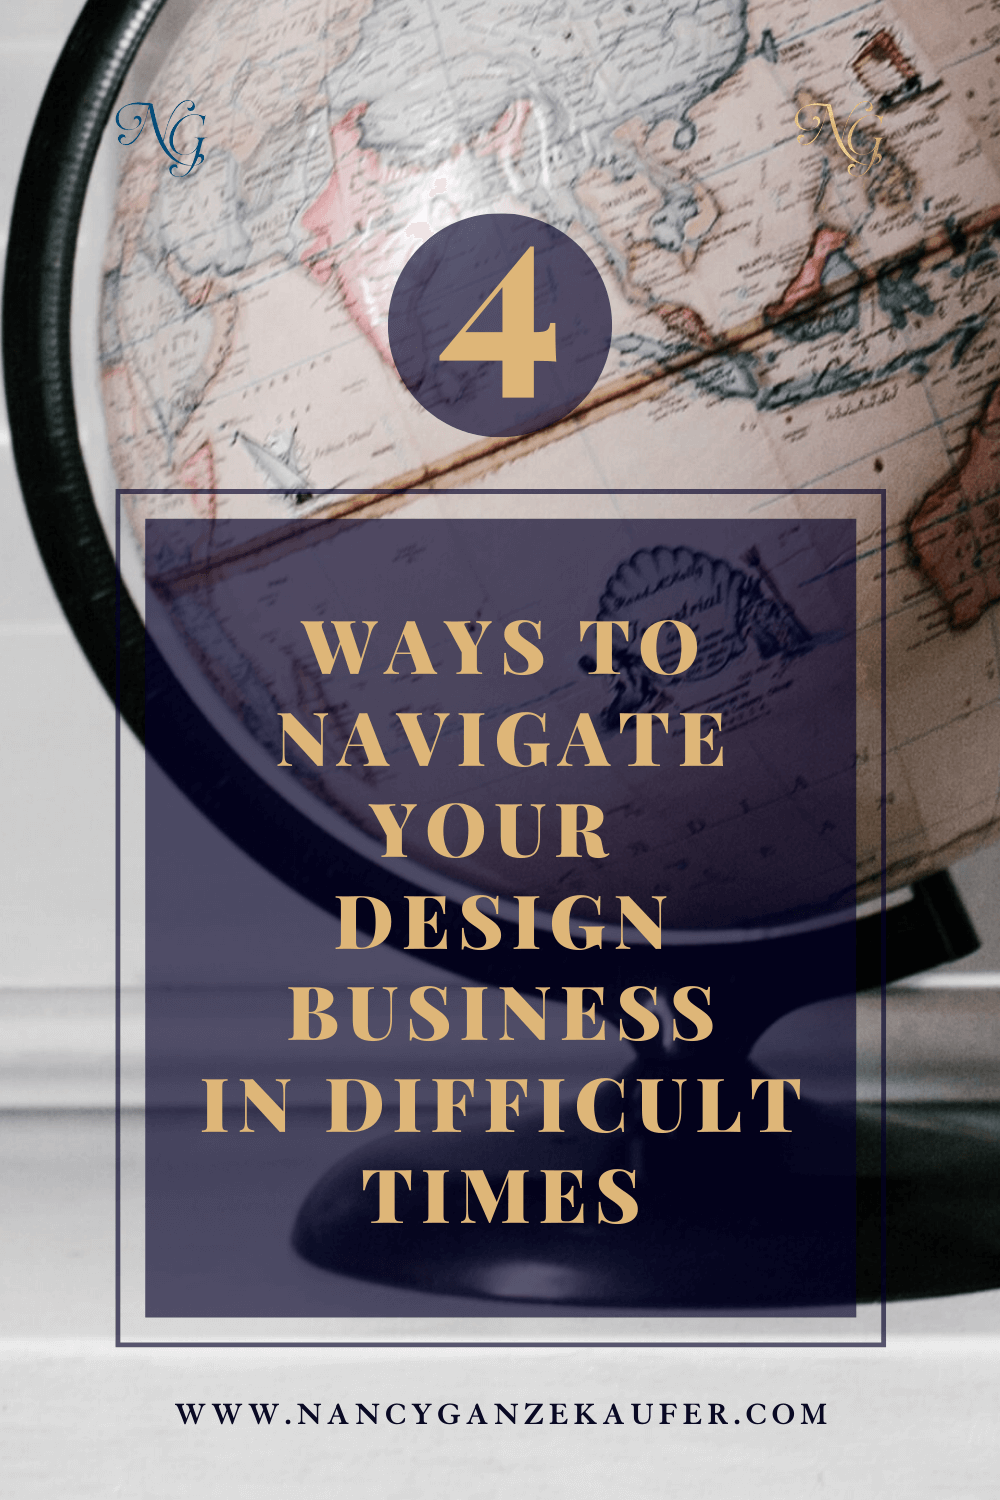 Four business tips to navigate your design business during this difficult time.